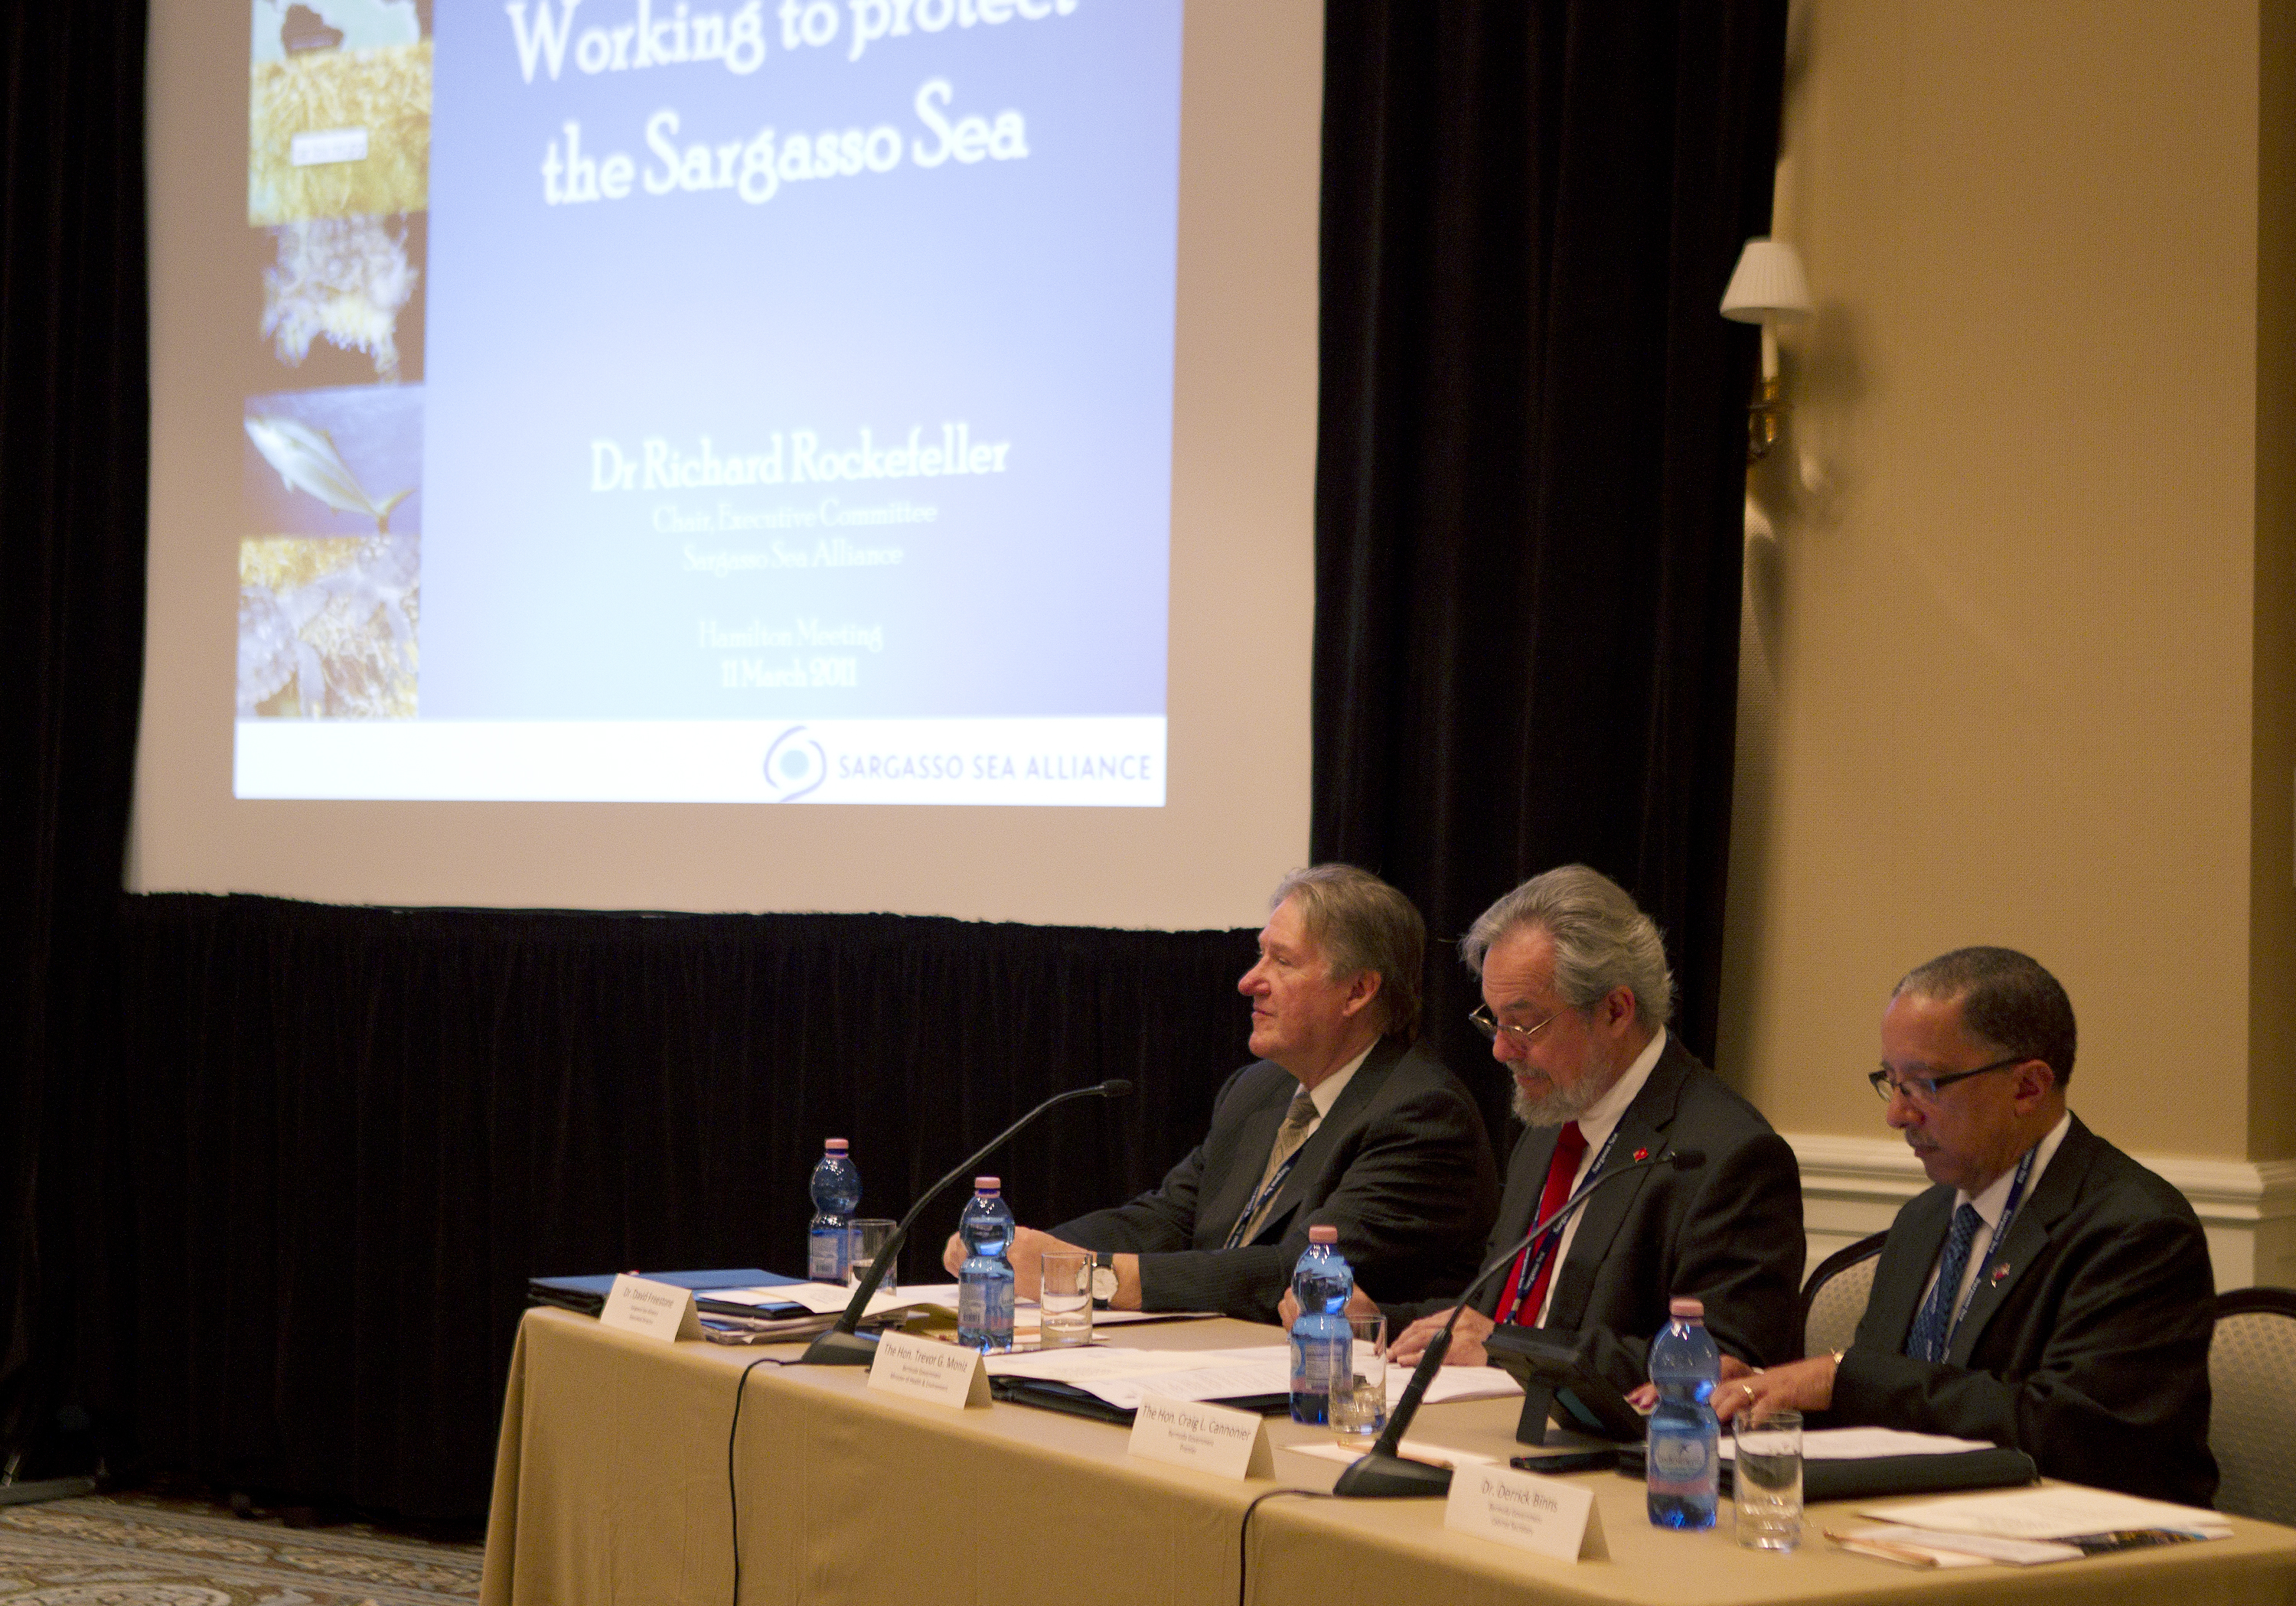 Governments come together in Bermuda on March 11, 2014 to adopt historic Hamilton Declaration to create stewardship for threatened Sargasso Sea. (Photo: Business Wire)